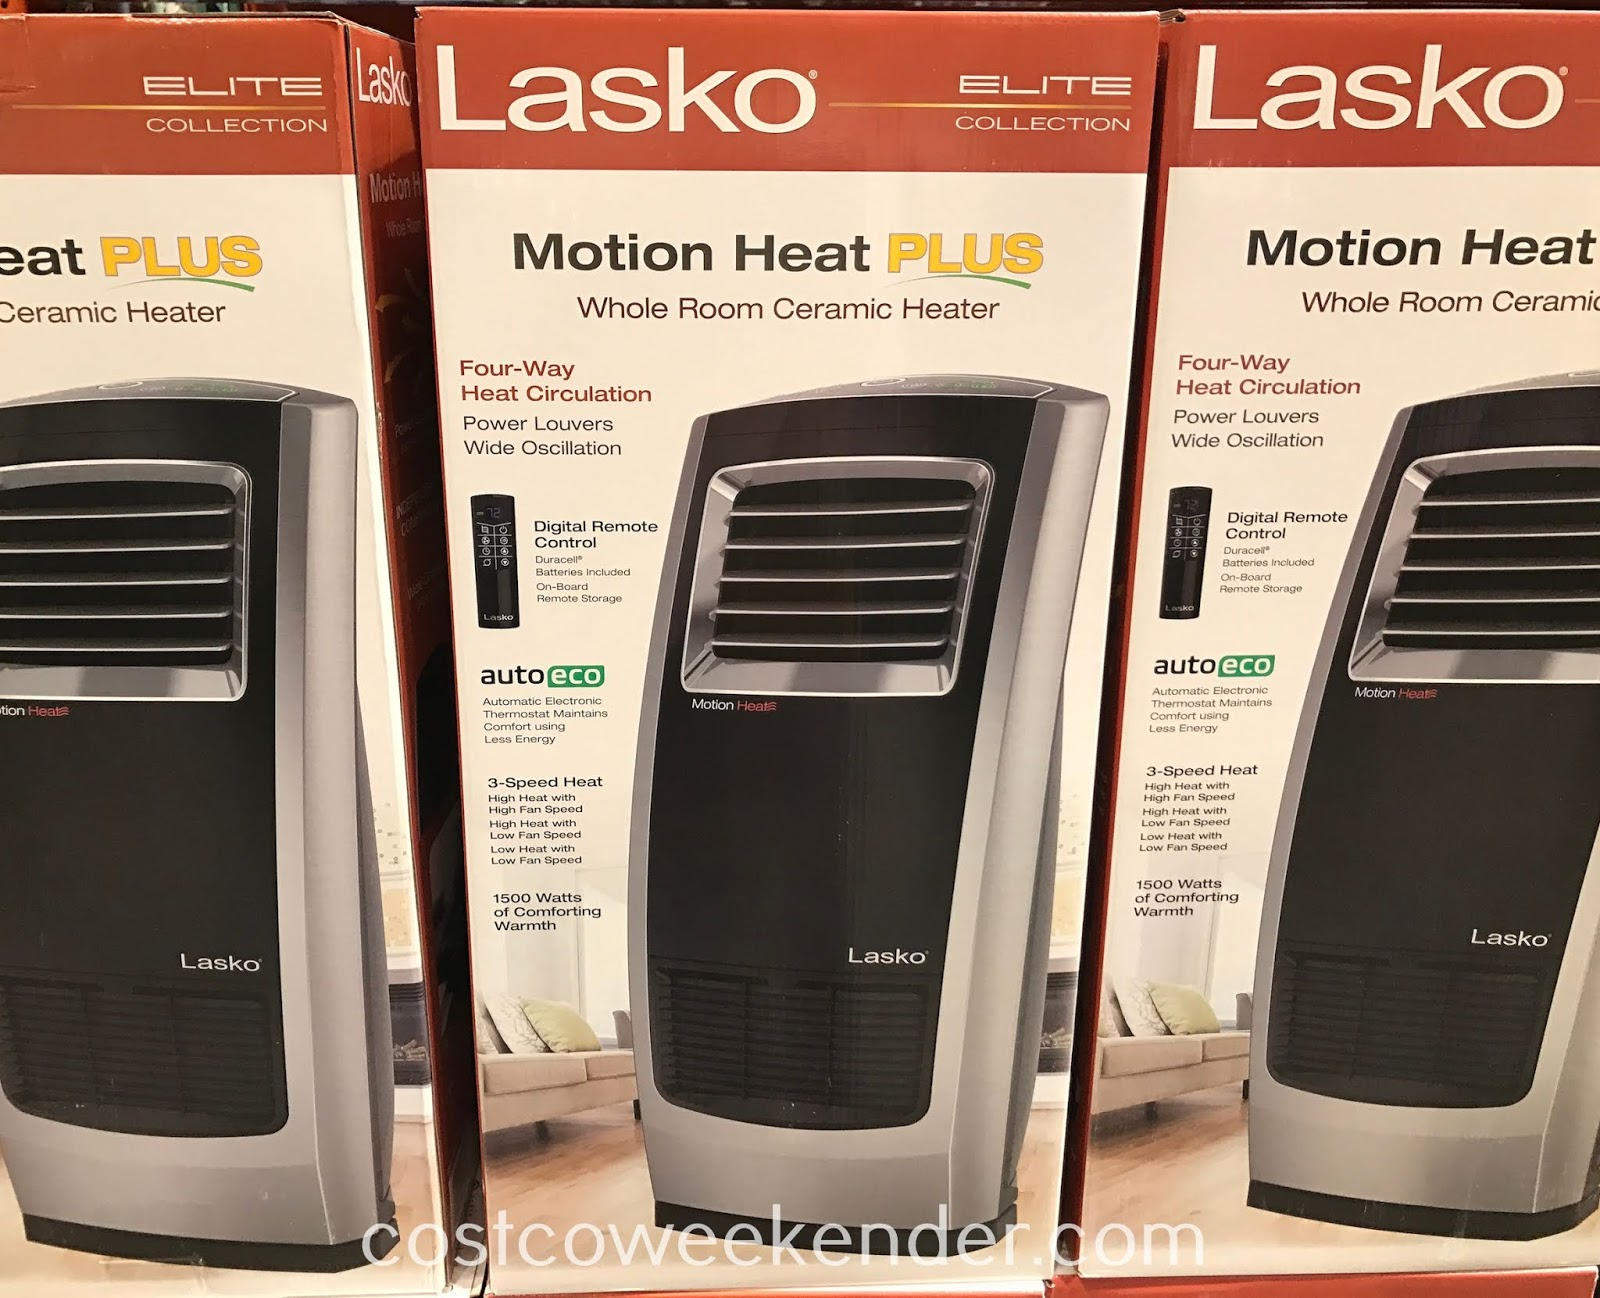 Feeling cold? Warm the room with the Lasko Whole Room Ceramic Heater and its all direction heat circulation